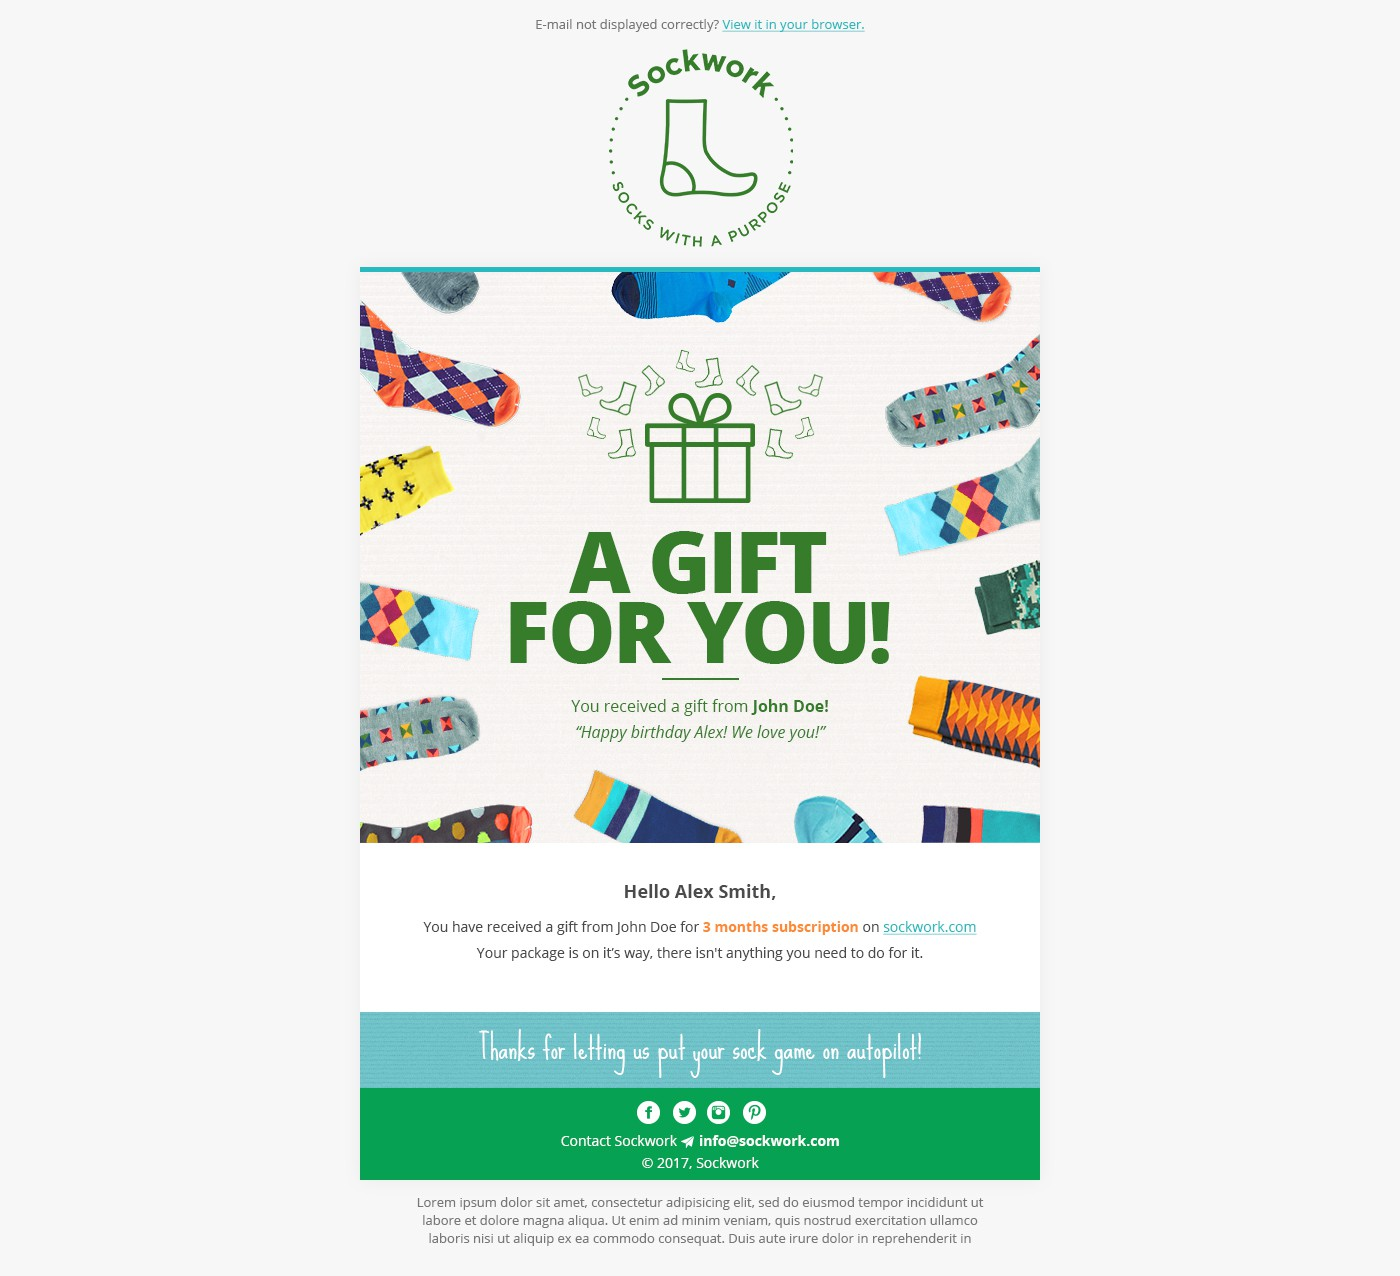 Design a fun gift e-mail for a cool fashion subscription site that donates to charity